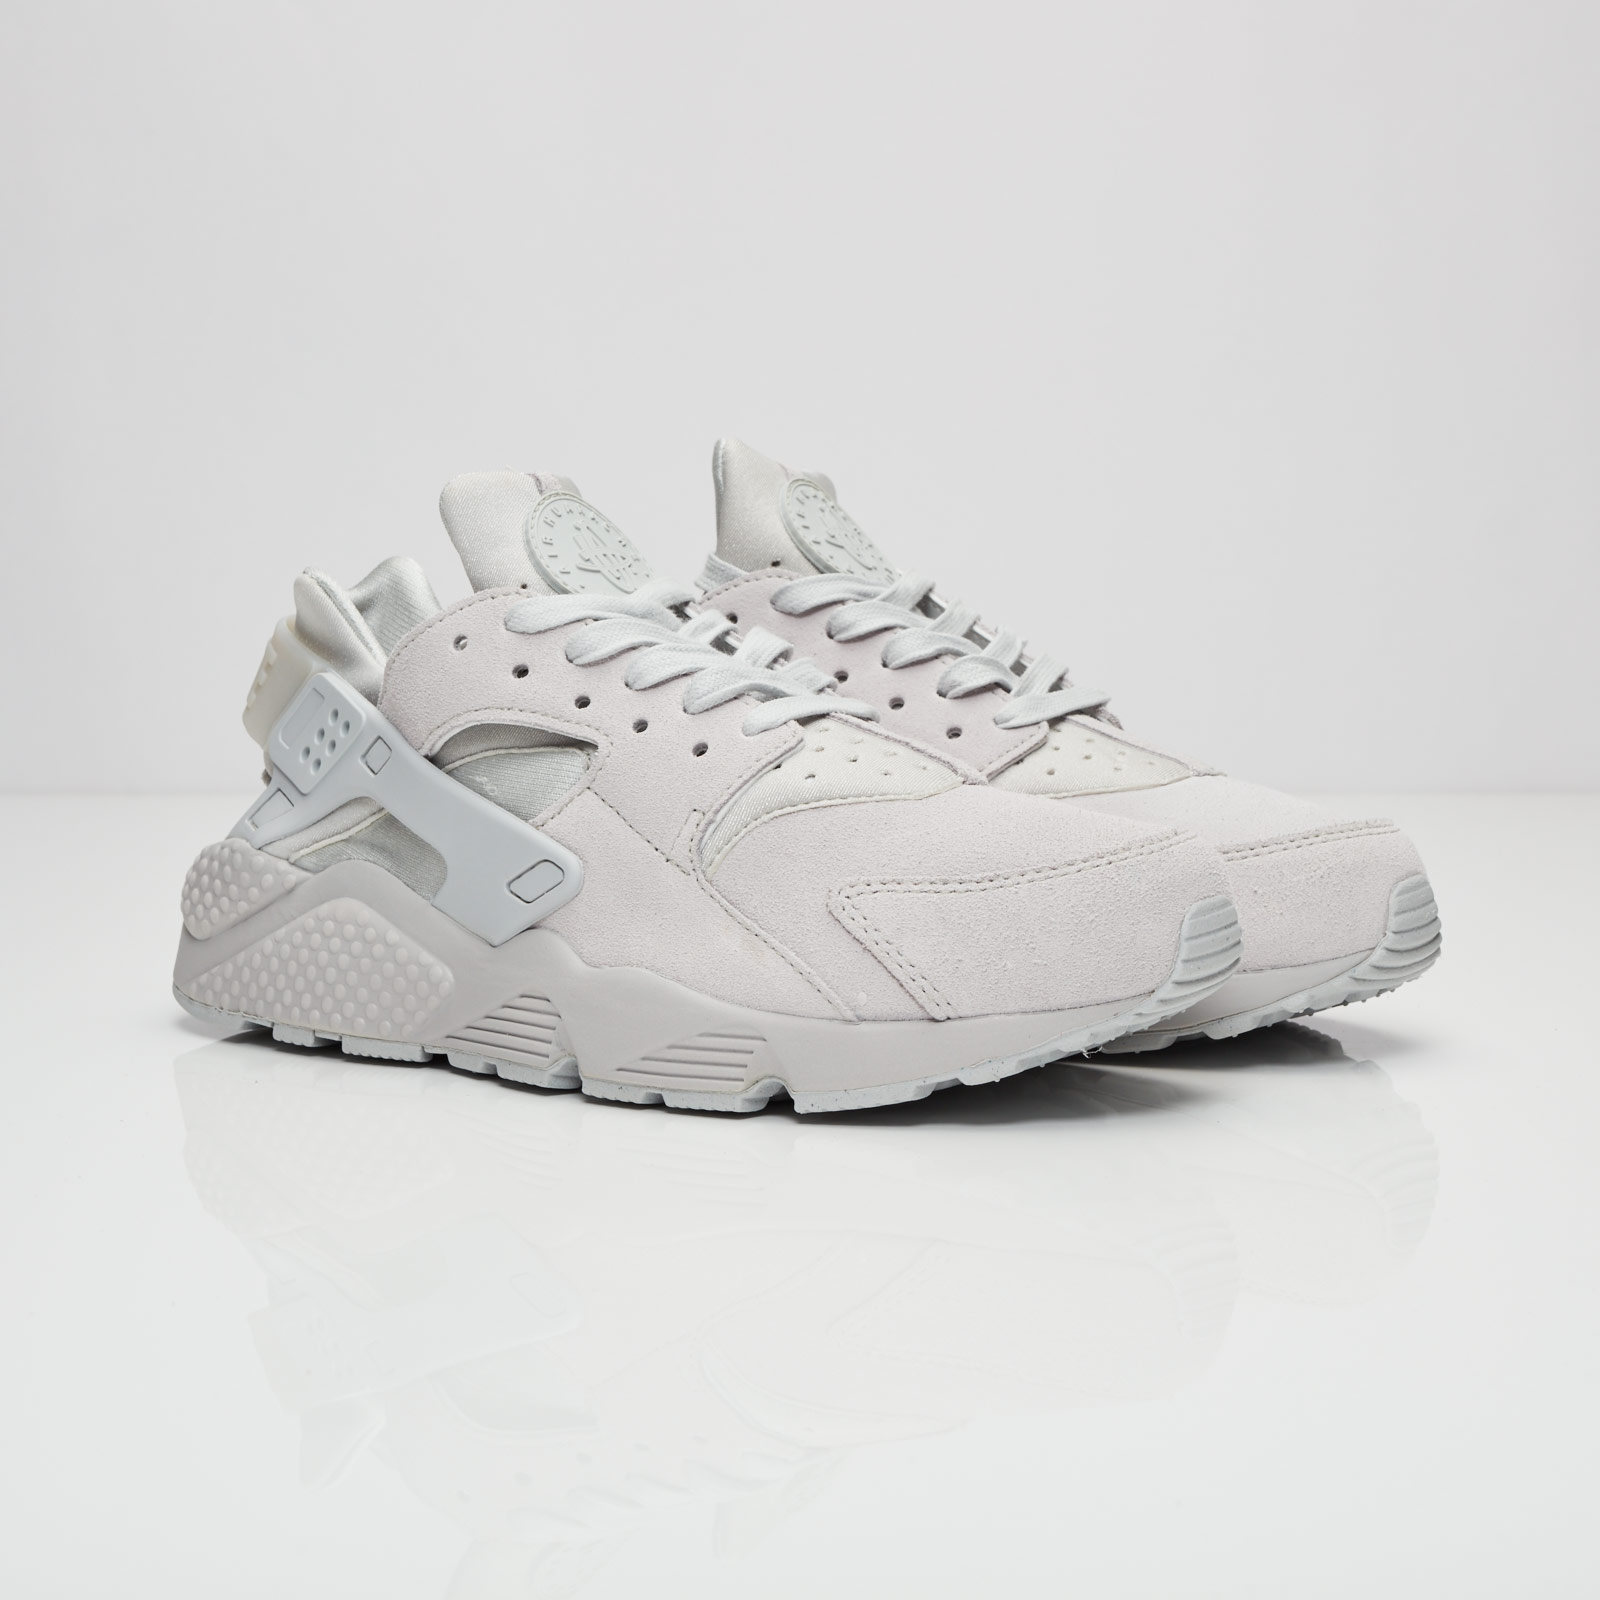 a644bf2972c2 Nike Air Huarache Run Premium - 704830-005 - Sneakersnstuff ...